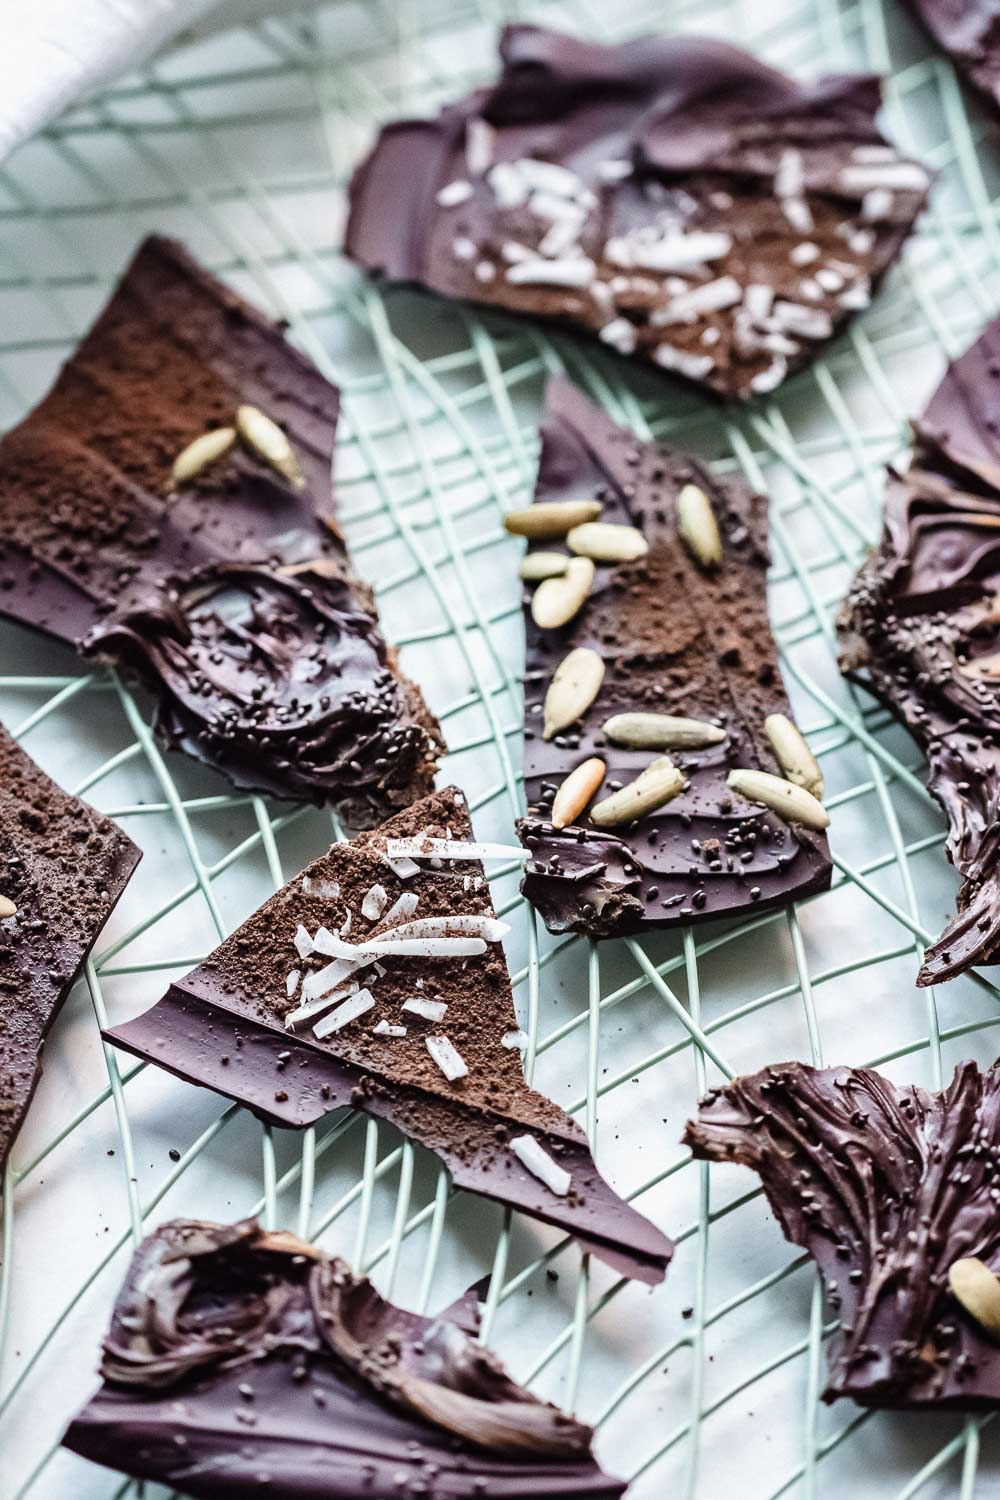 Dark chocolate bark thins is one of the easiest and quickest treat to make with chocolate. The possibilities are practically endless! Make them for yourself (definitely do this), or make them as gifts for family & friends.